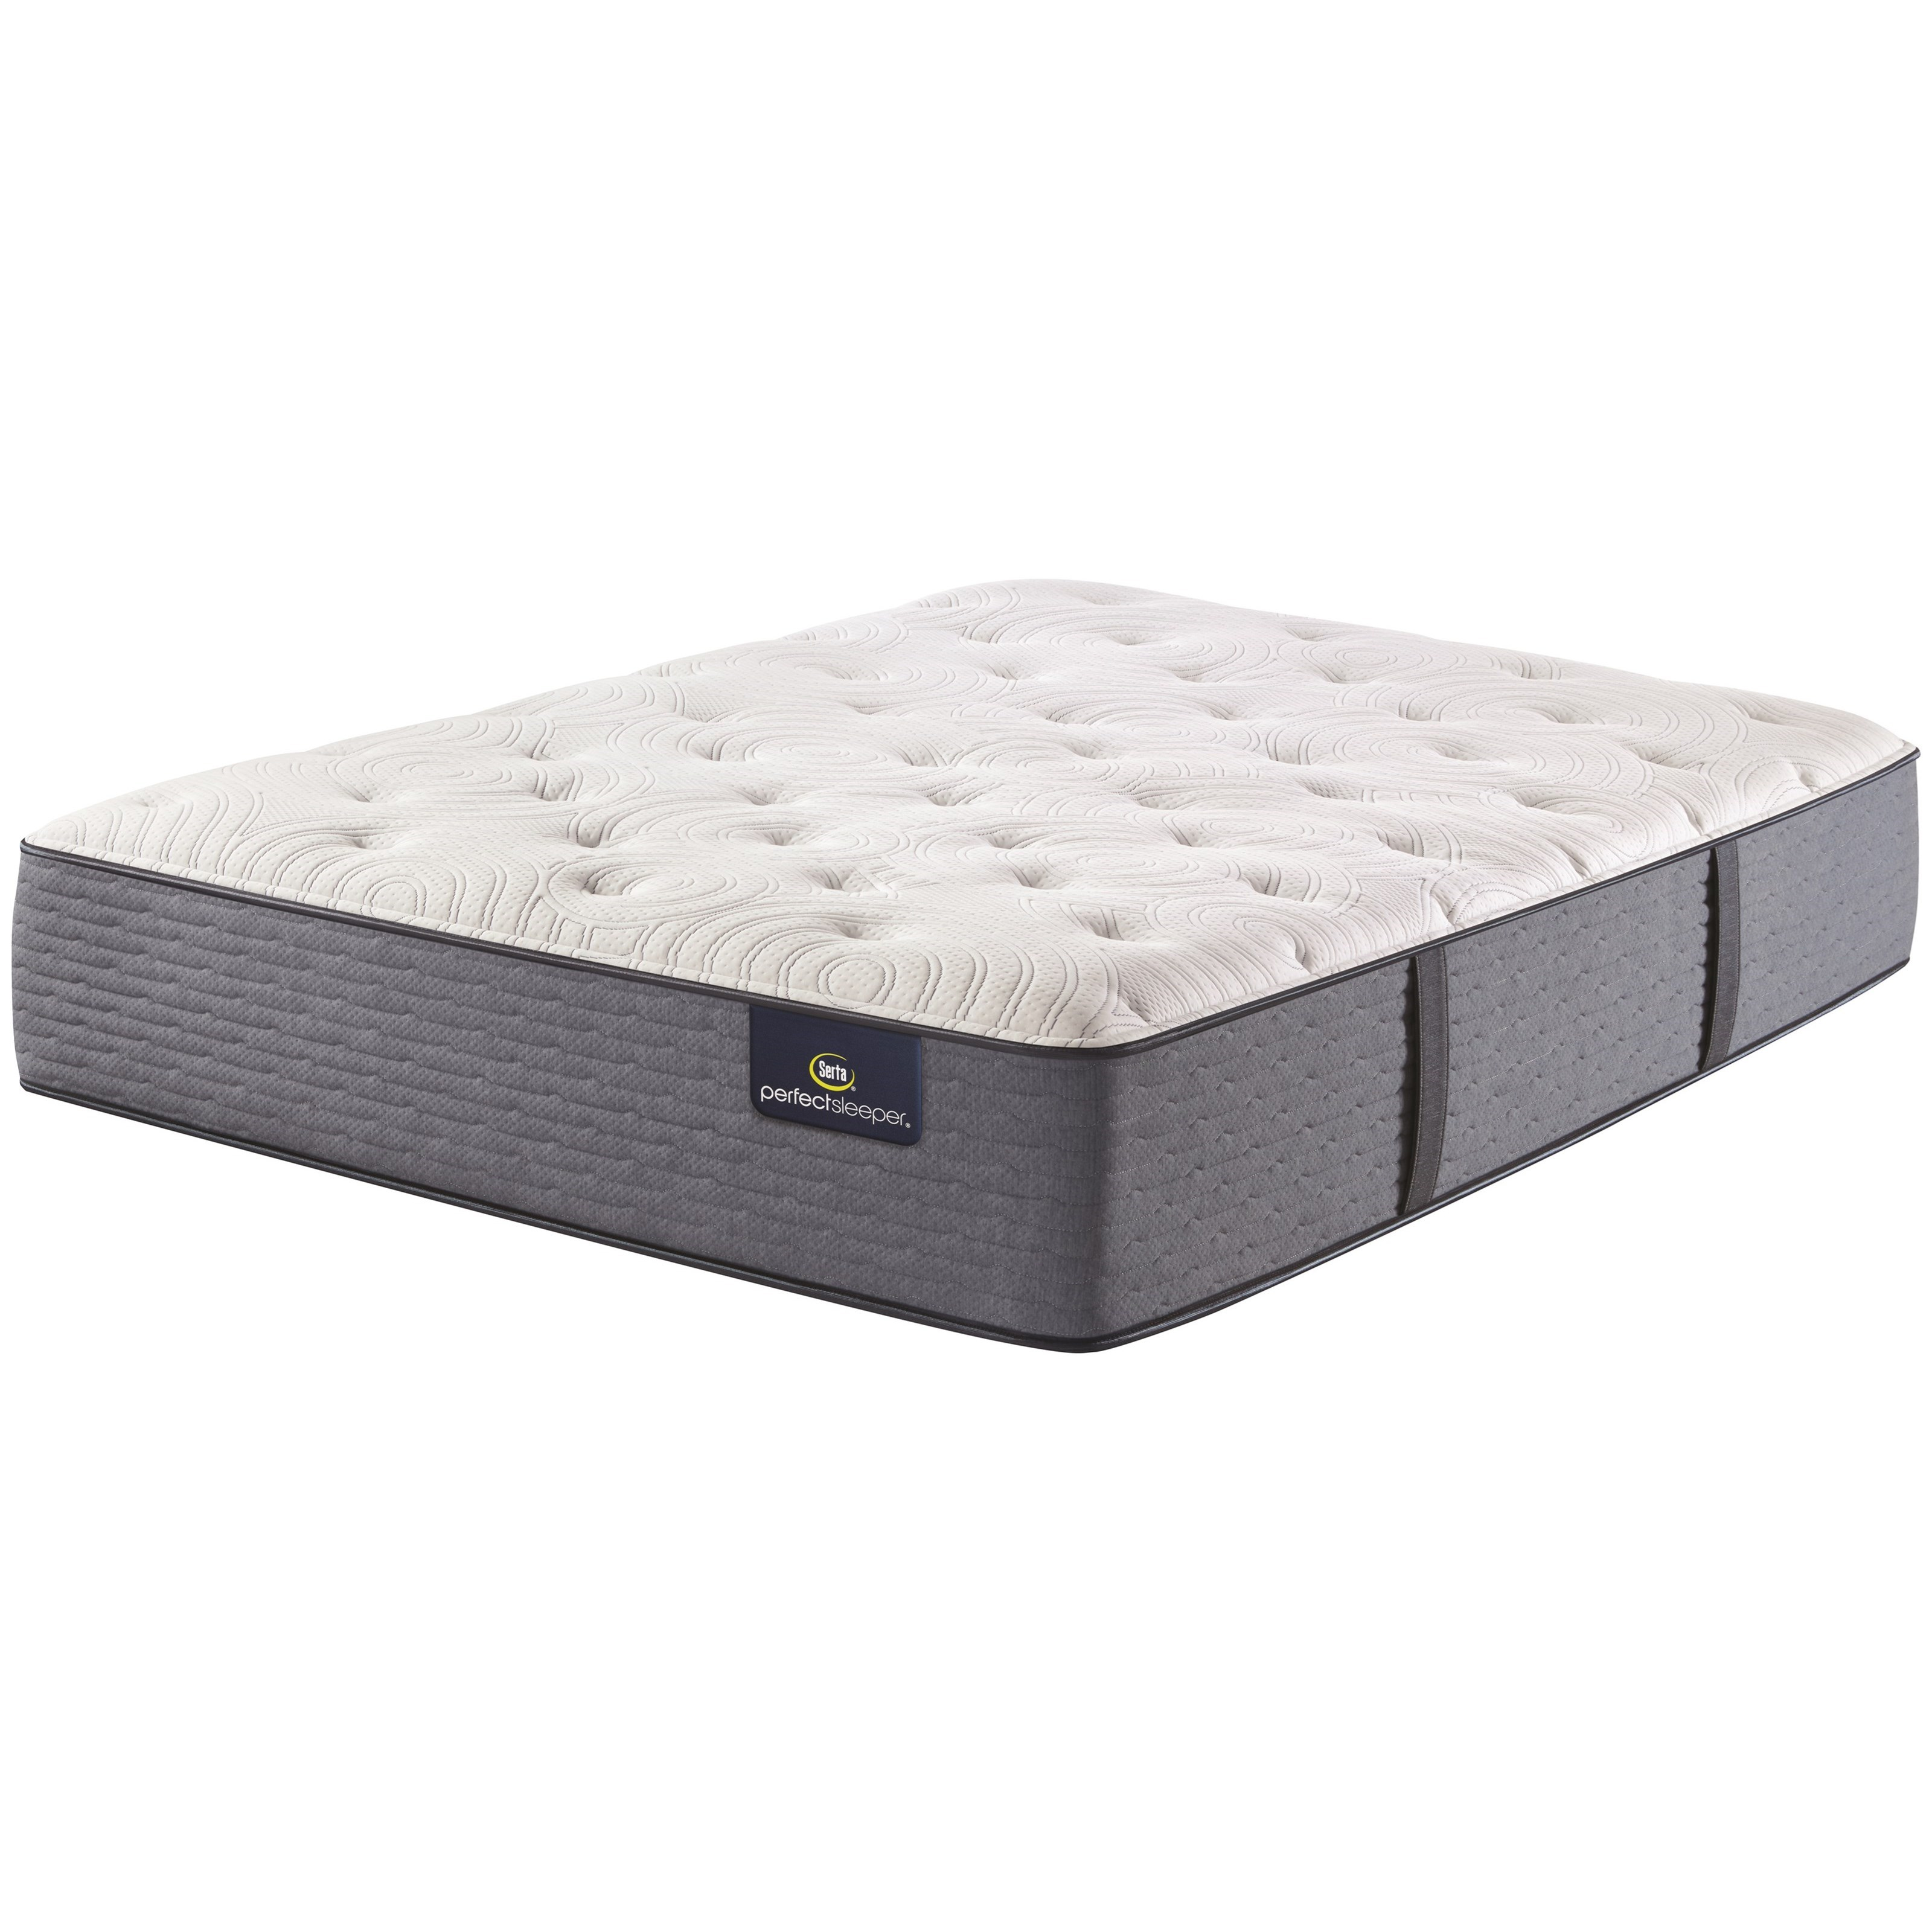 "Renewed Night Medium Queen 14"" Medium Mattress by Serta at Darvin Furniture"